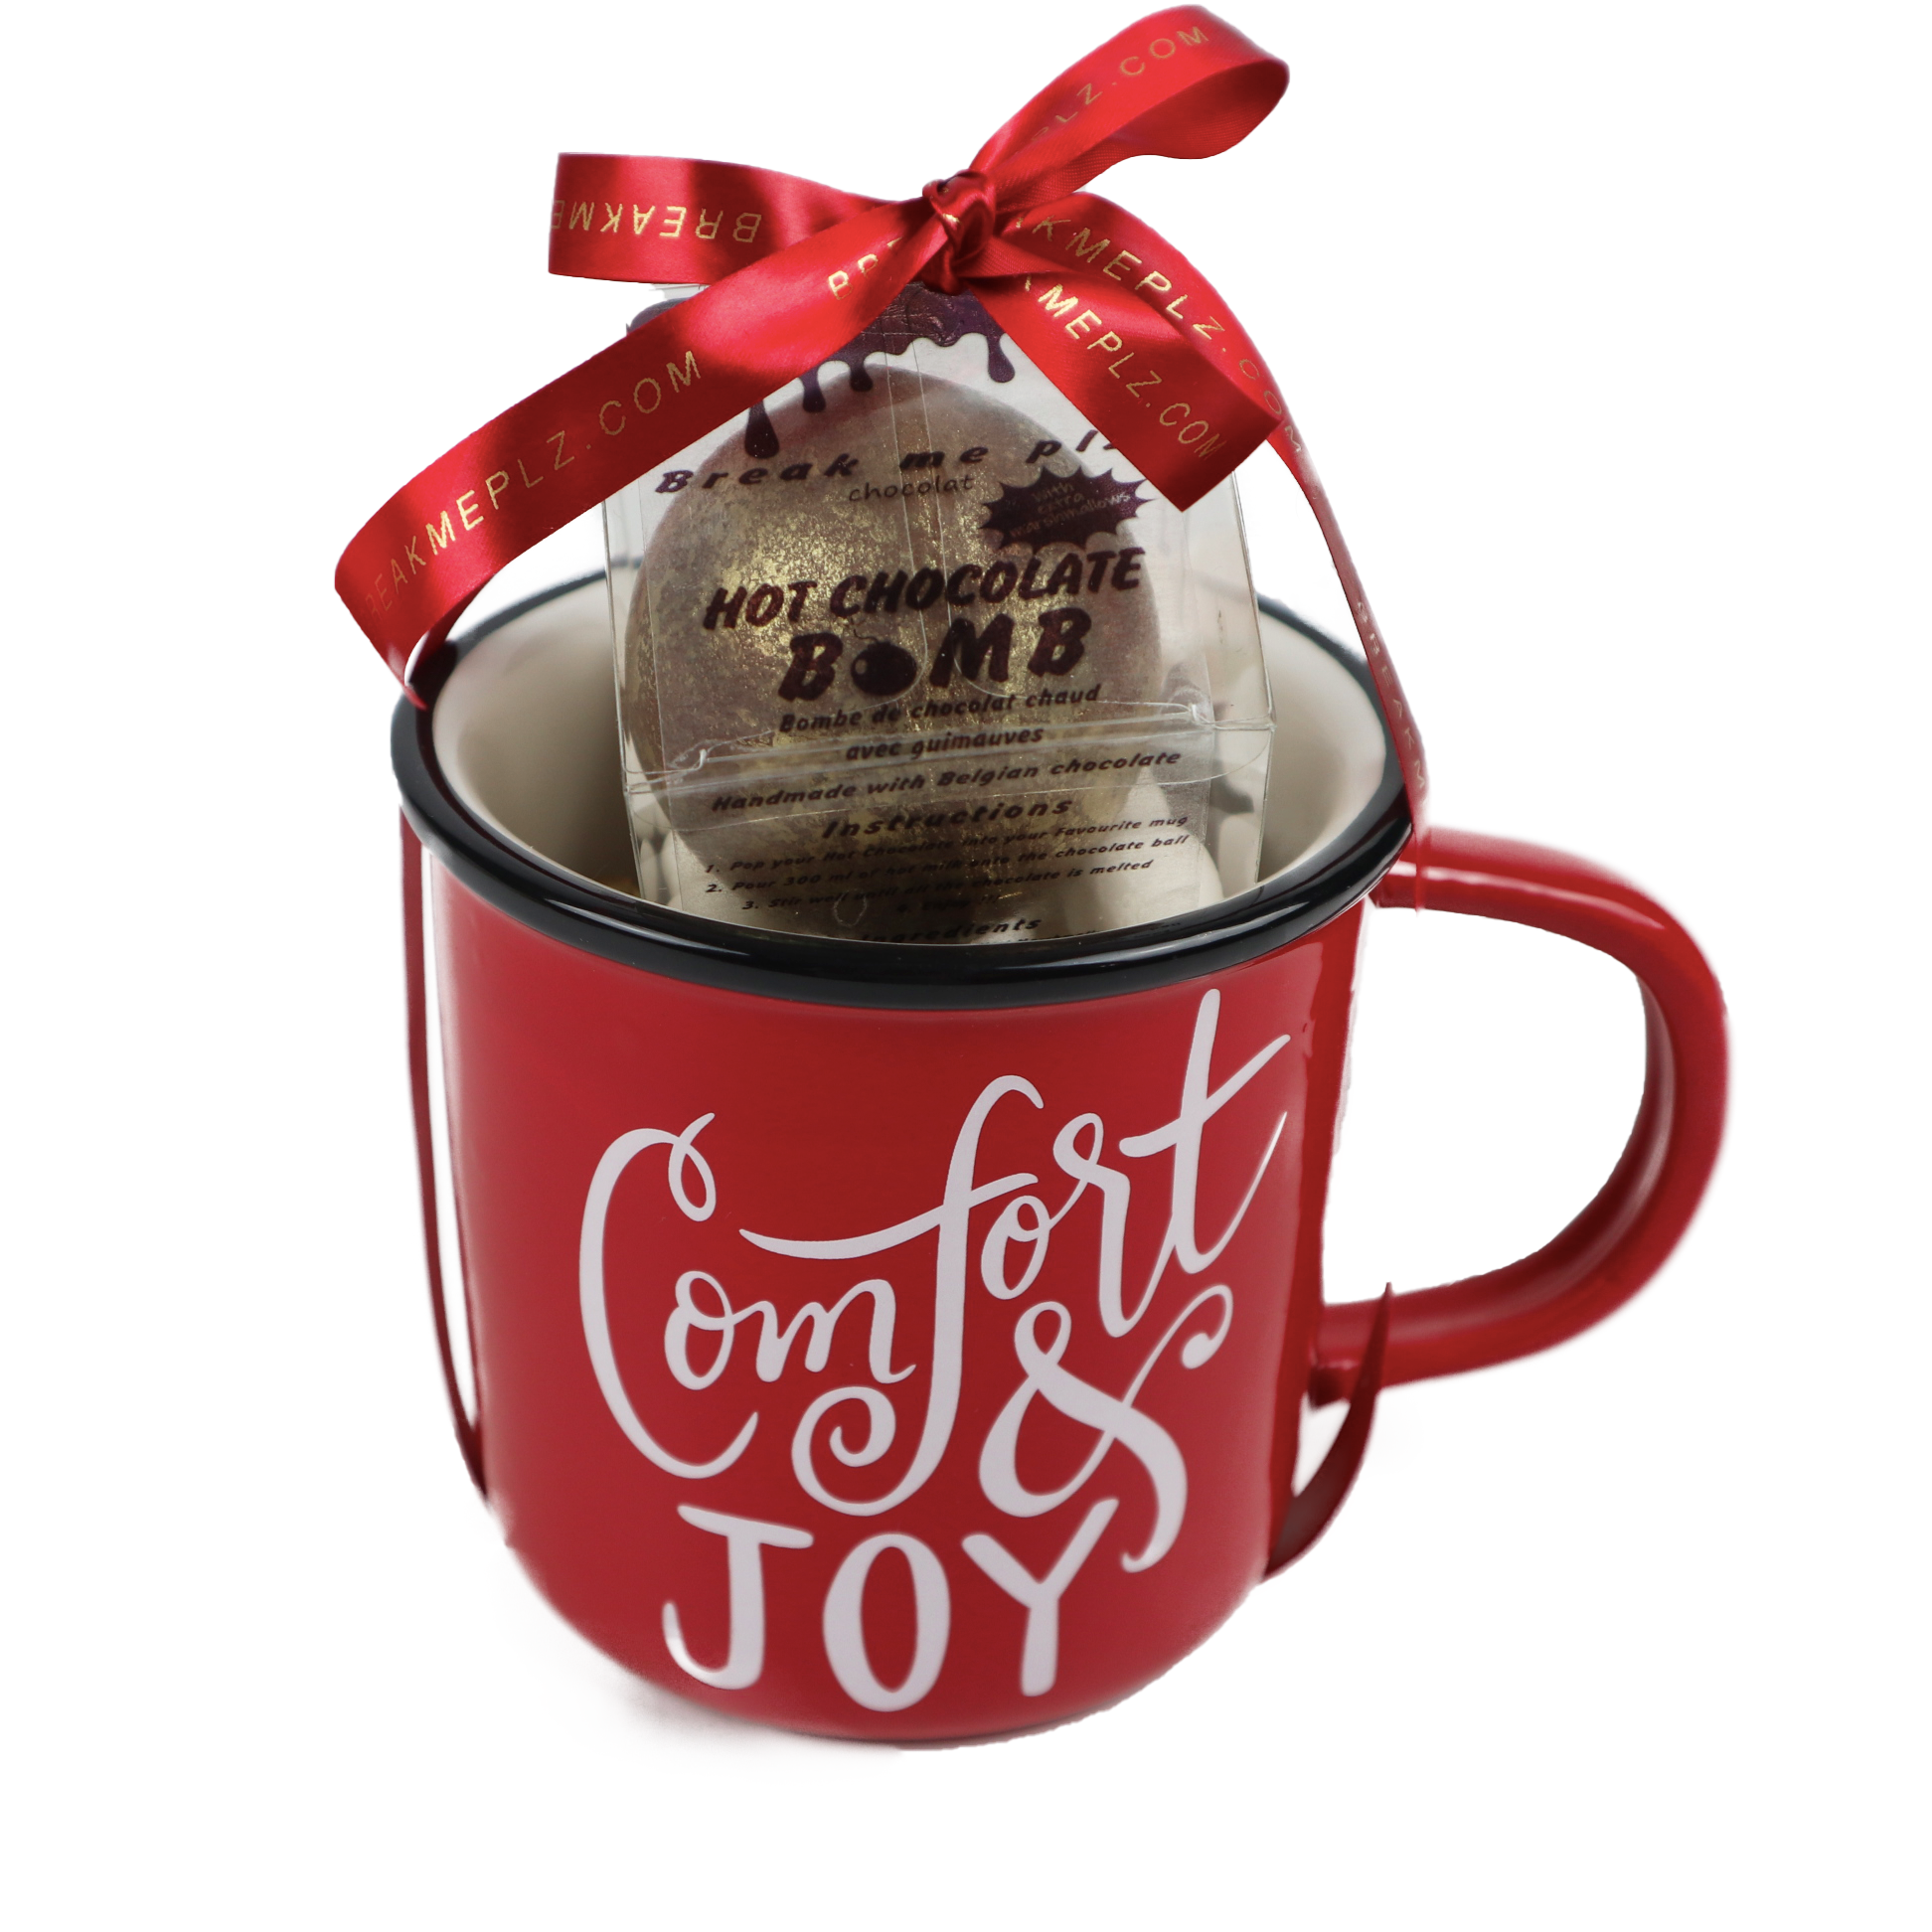 Hot Chocolate Bomb+Mug(Gift set)